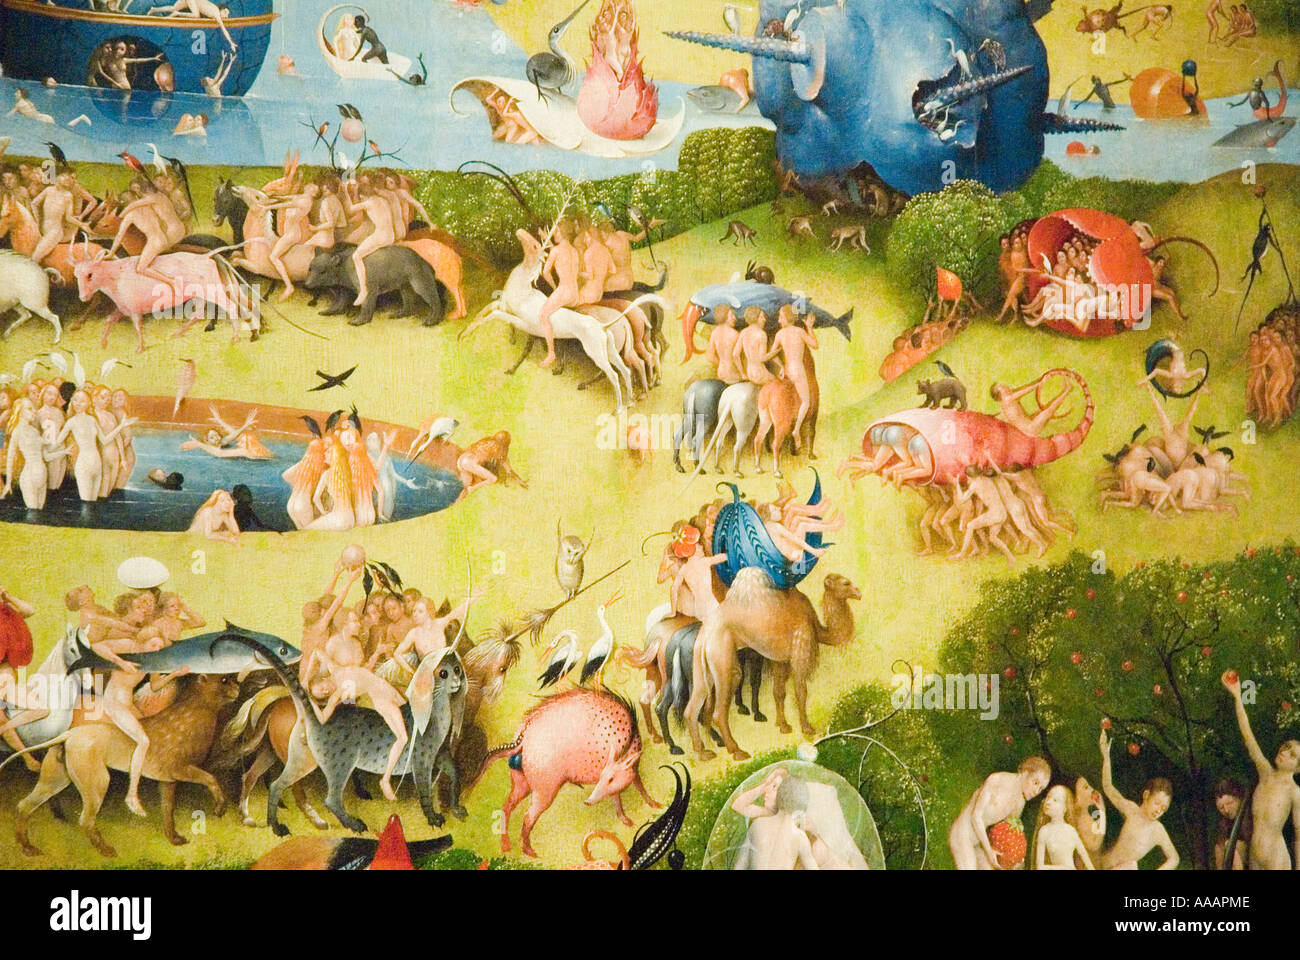 The Garden Of Earthly Delights Painting By Hieronymus Bosch Stock Photo 7183053 Alamy